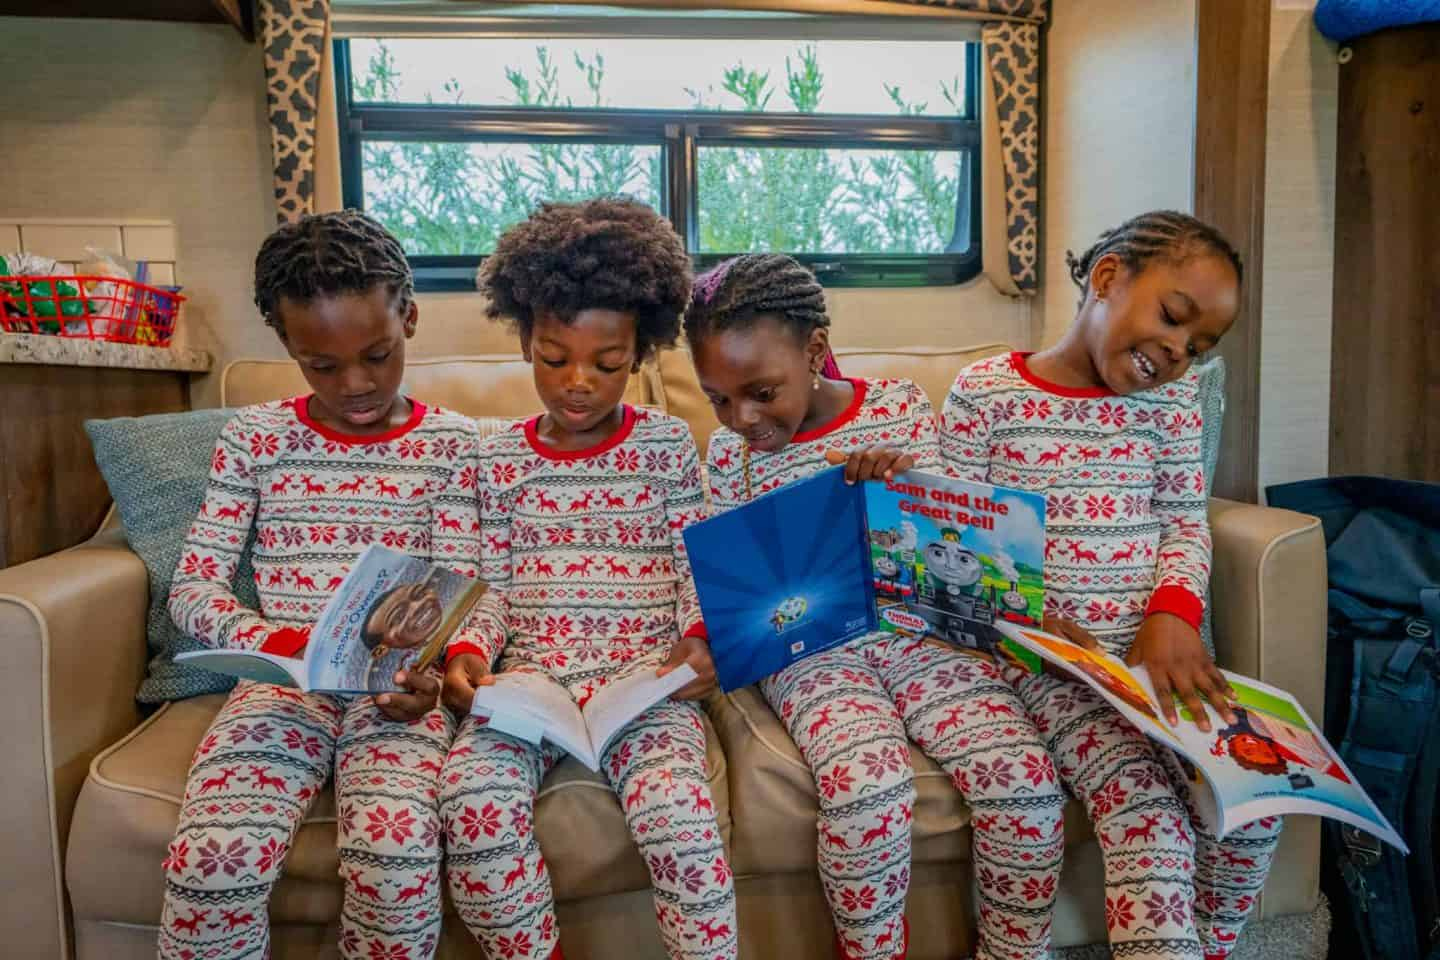 Beyond Reading: 9 Ways To Keep Kids Occupied With Books